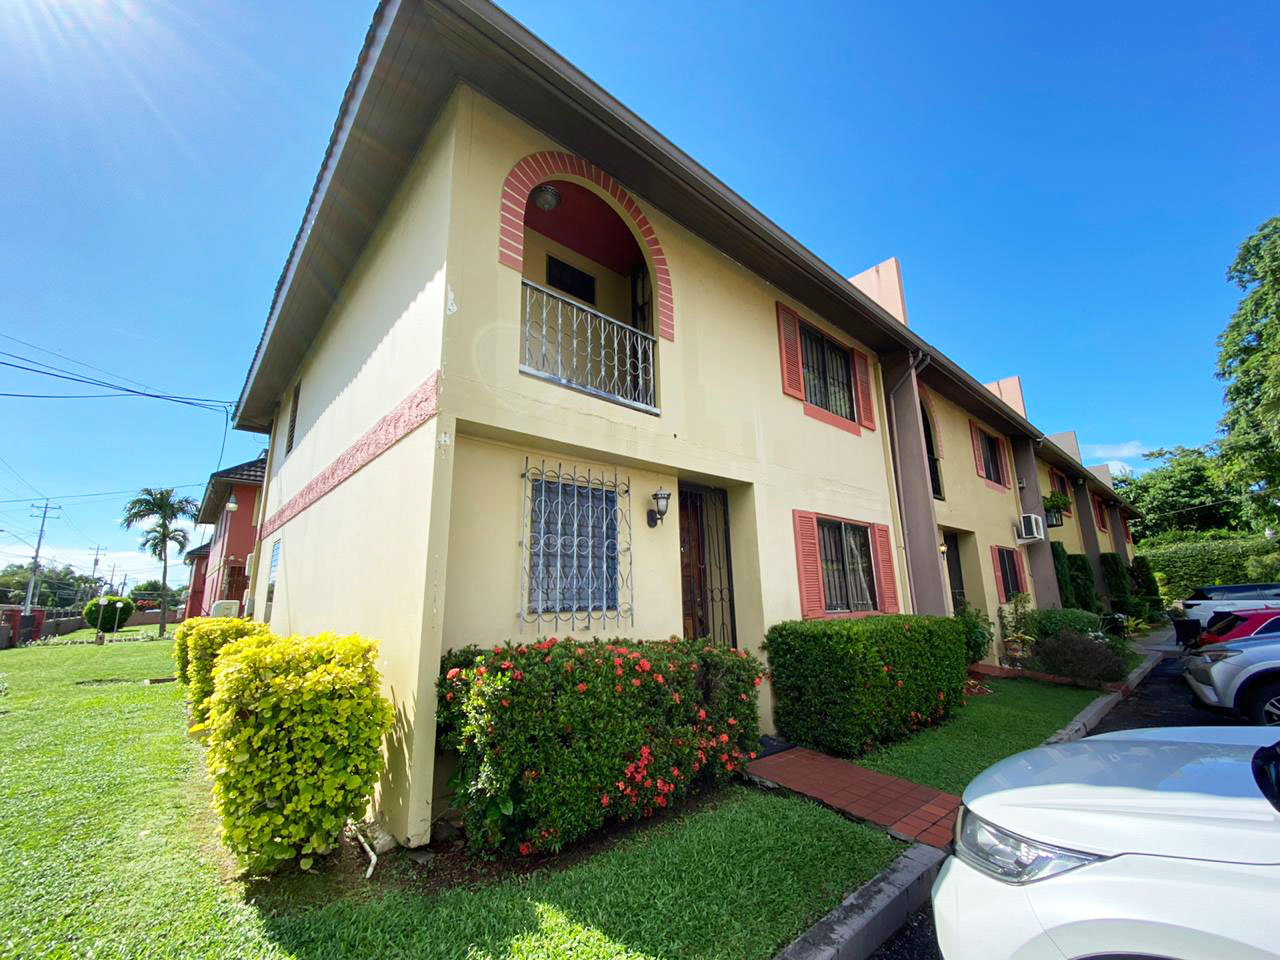 For Rent – Camelot Townhouses, Valsayn North – $9,500TT – 3 Bedroom townhouse